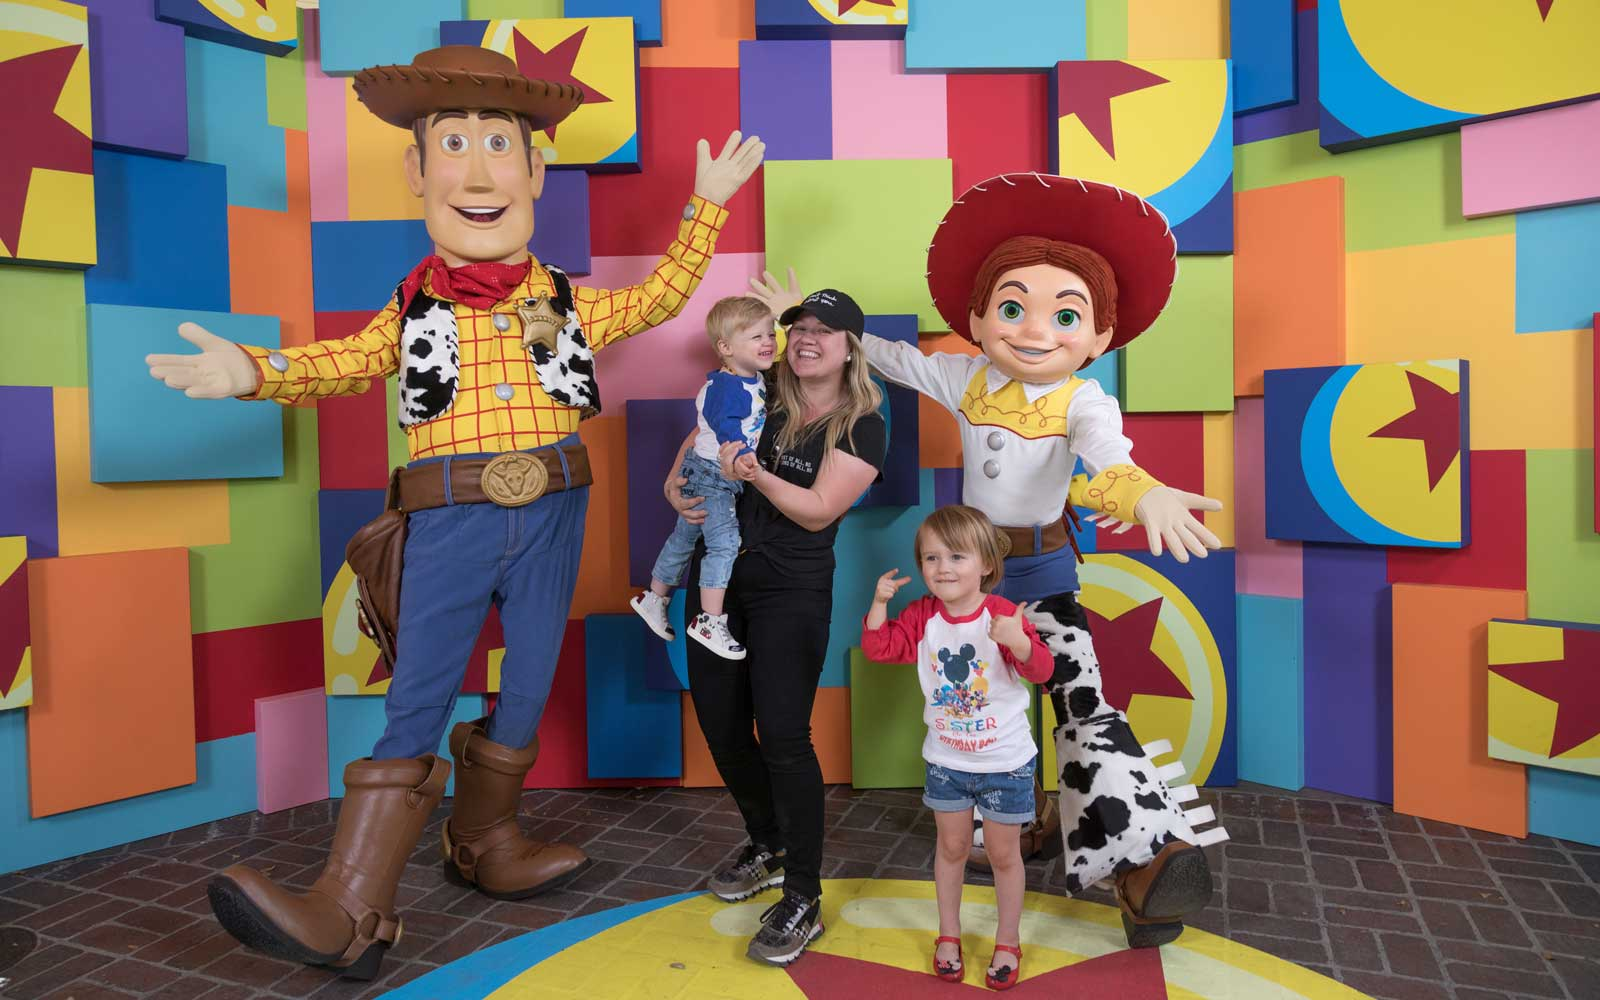 Kelly Clarkson with her kids at Pixar Fest